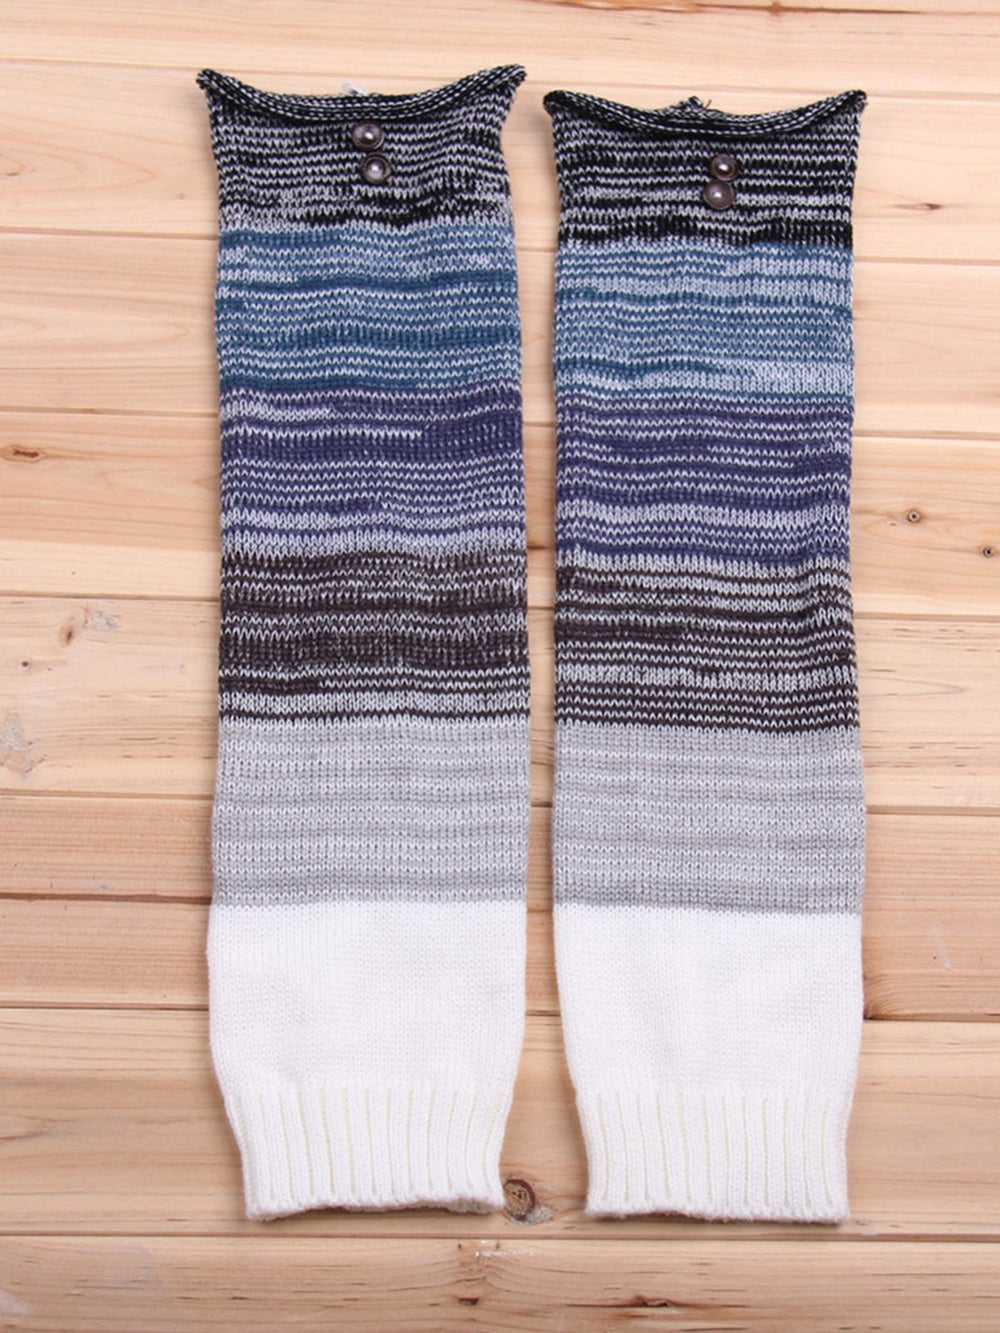 Warm knit leg warmers knee-high socks wool socks